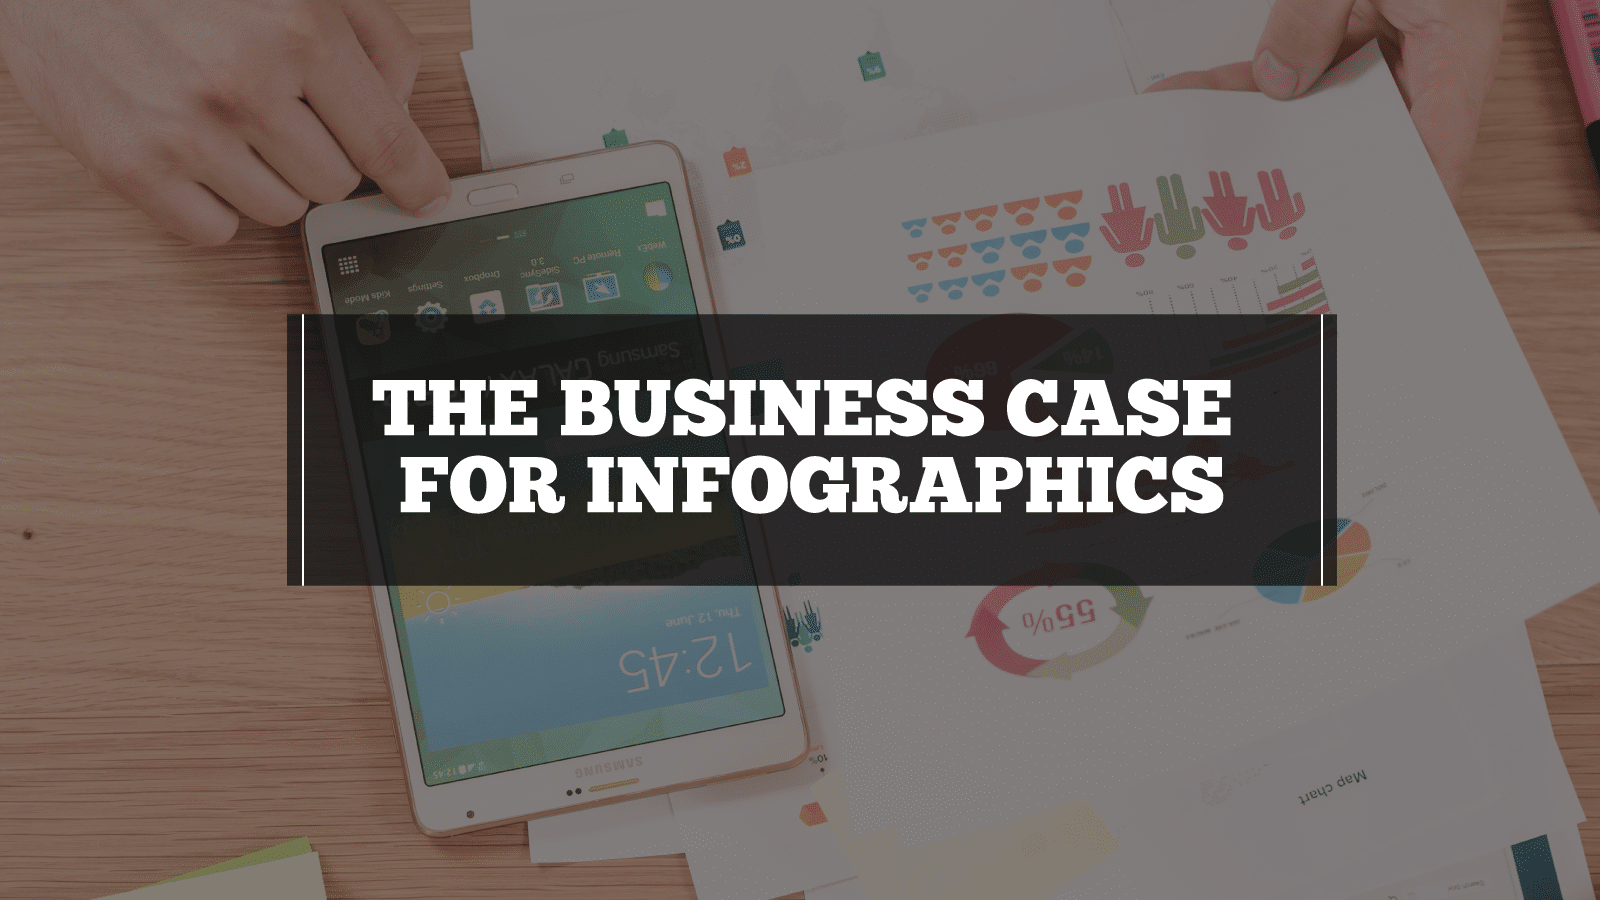 The Business Case for Infographics